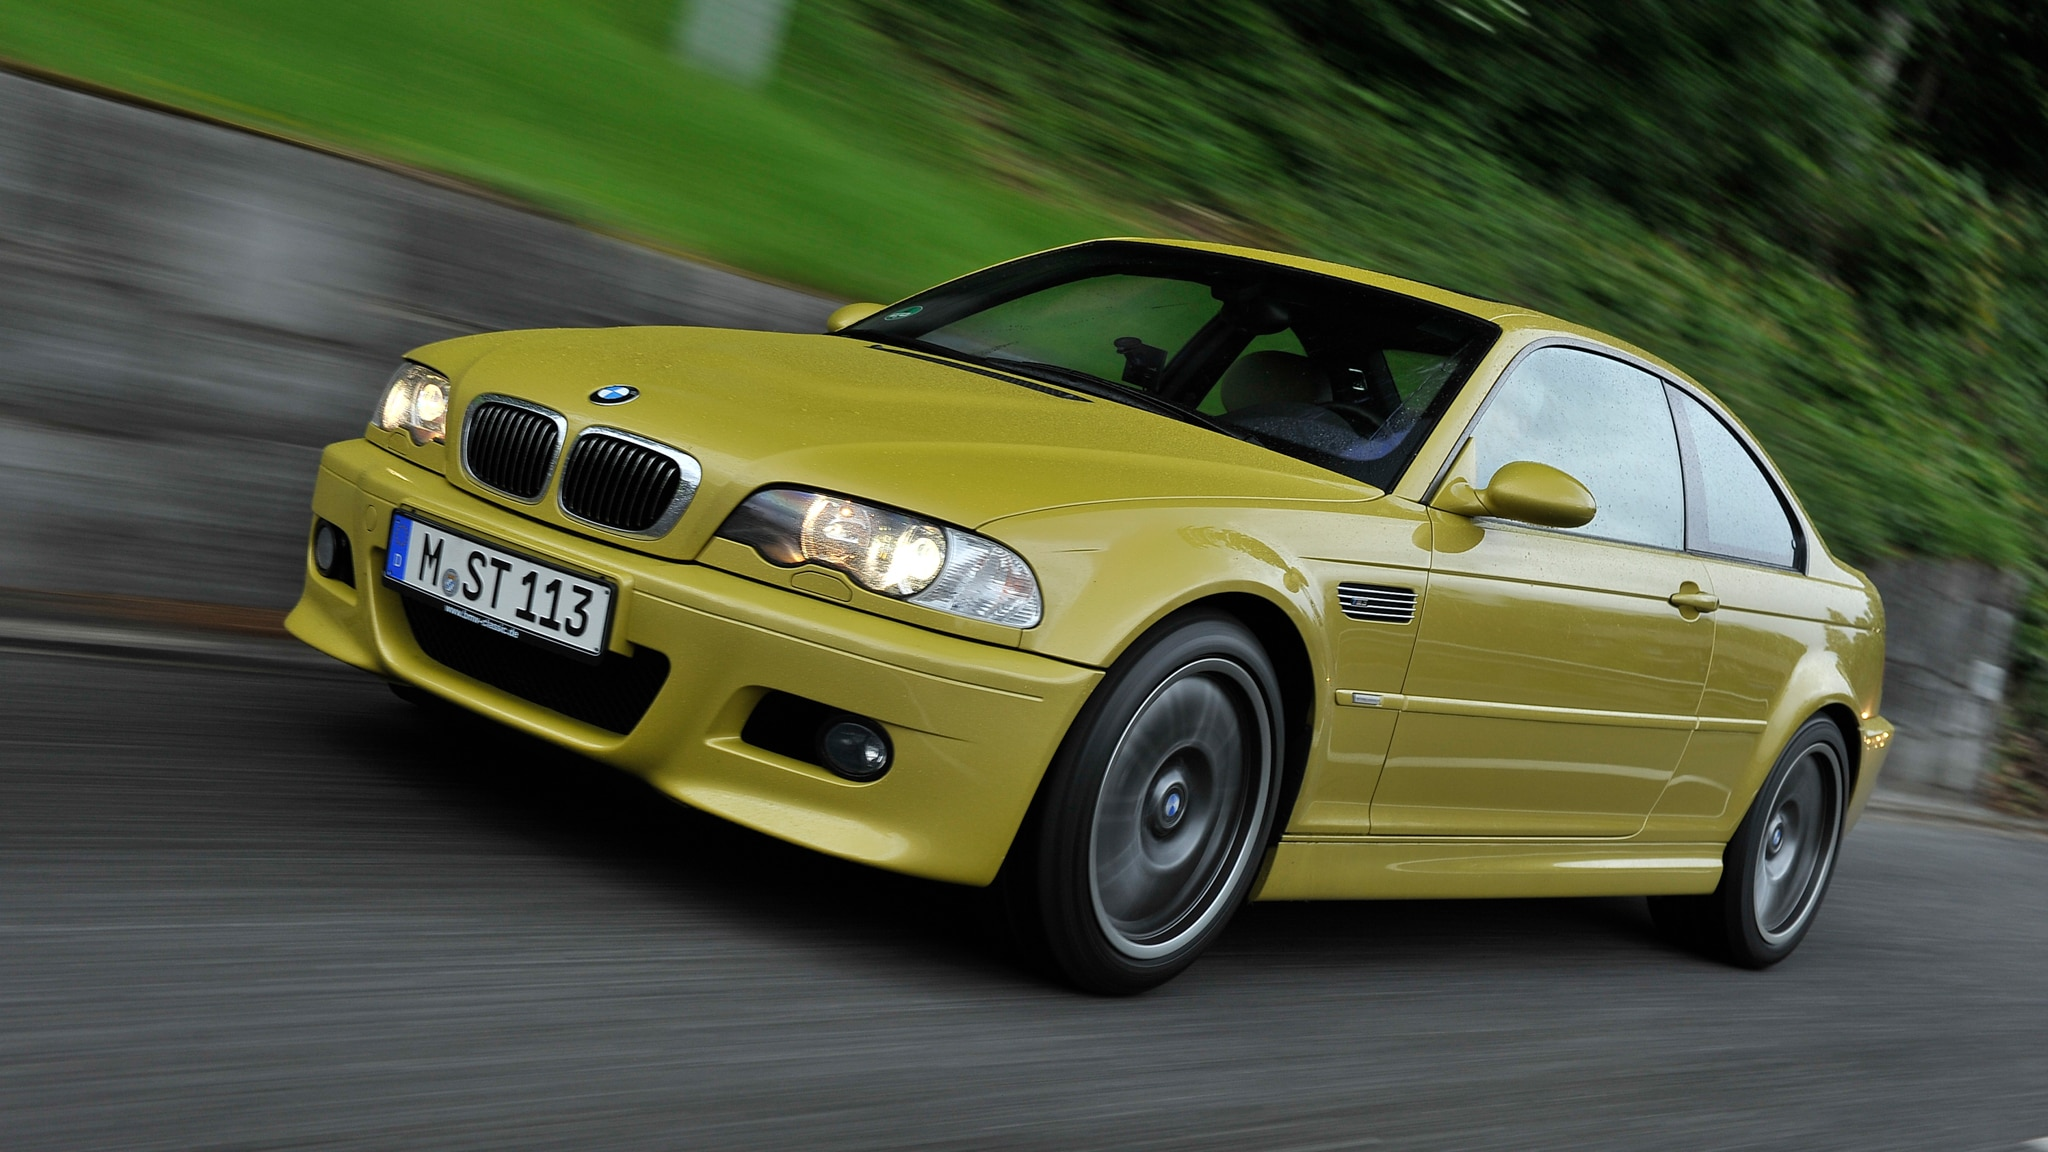 The Bmw 3 Series History Buying Tips Photos And More